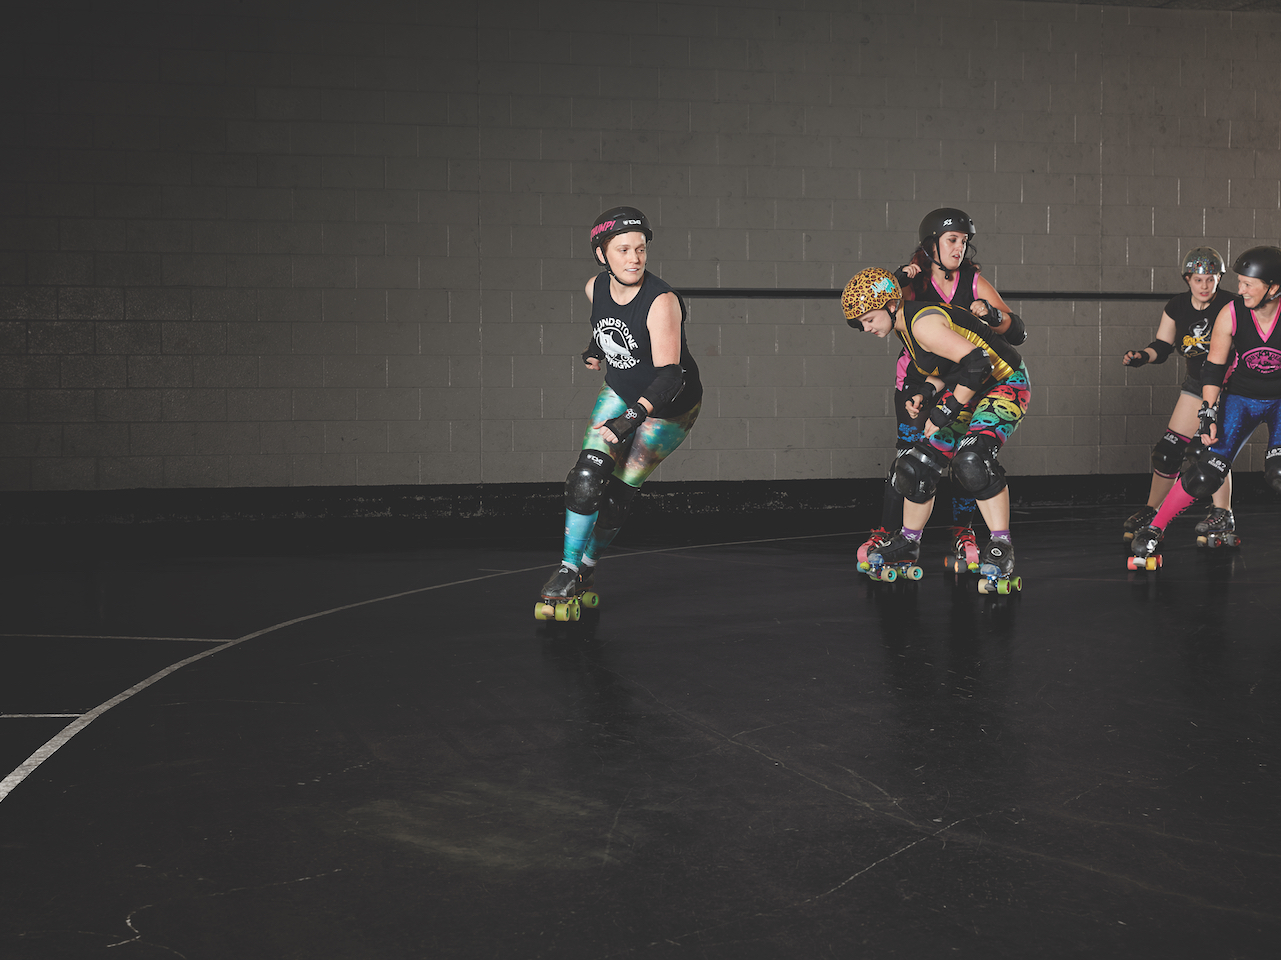 A group of women are roller-skating. Roller derby is very physically intense, with free rein to knock people down